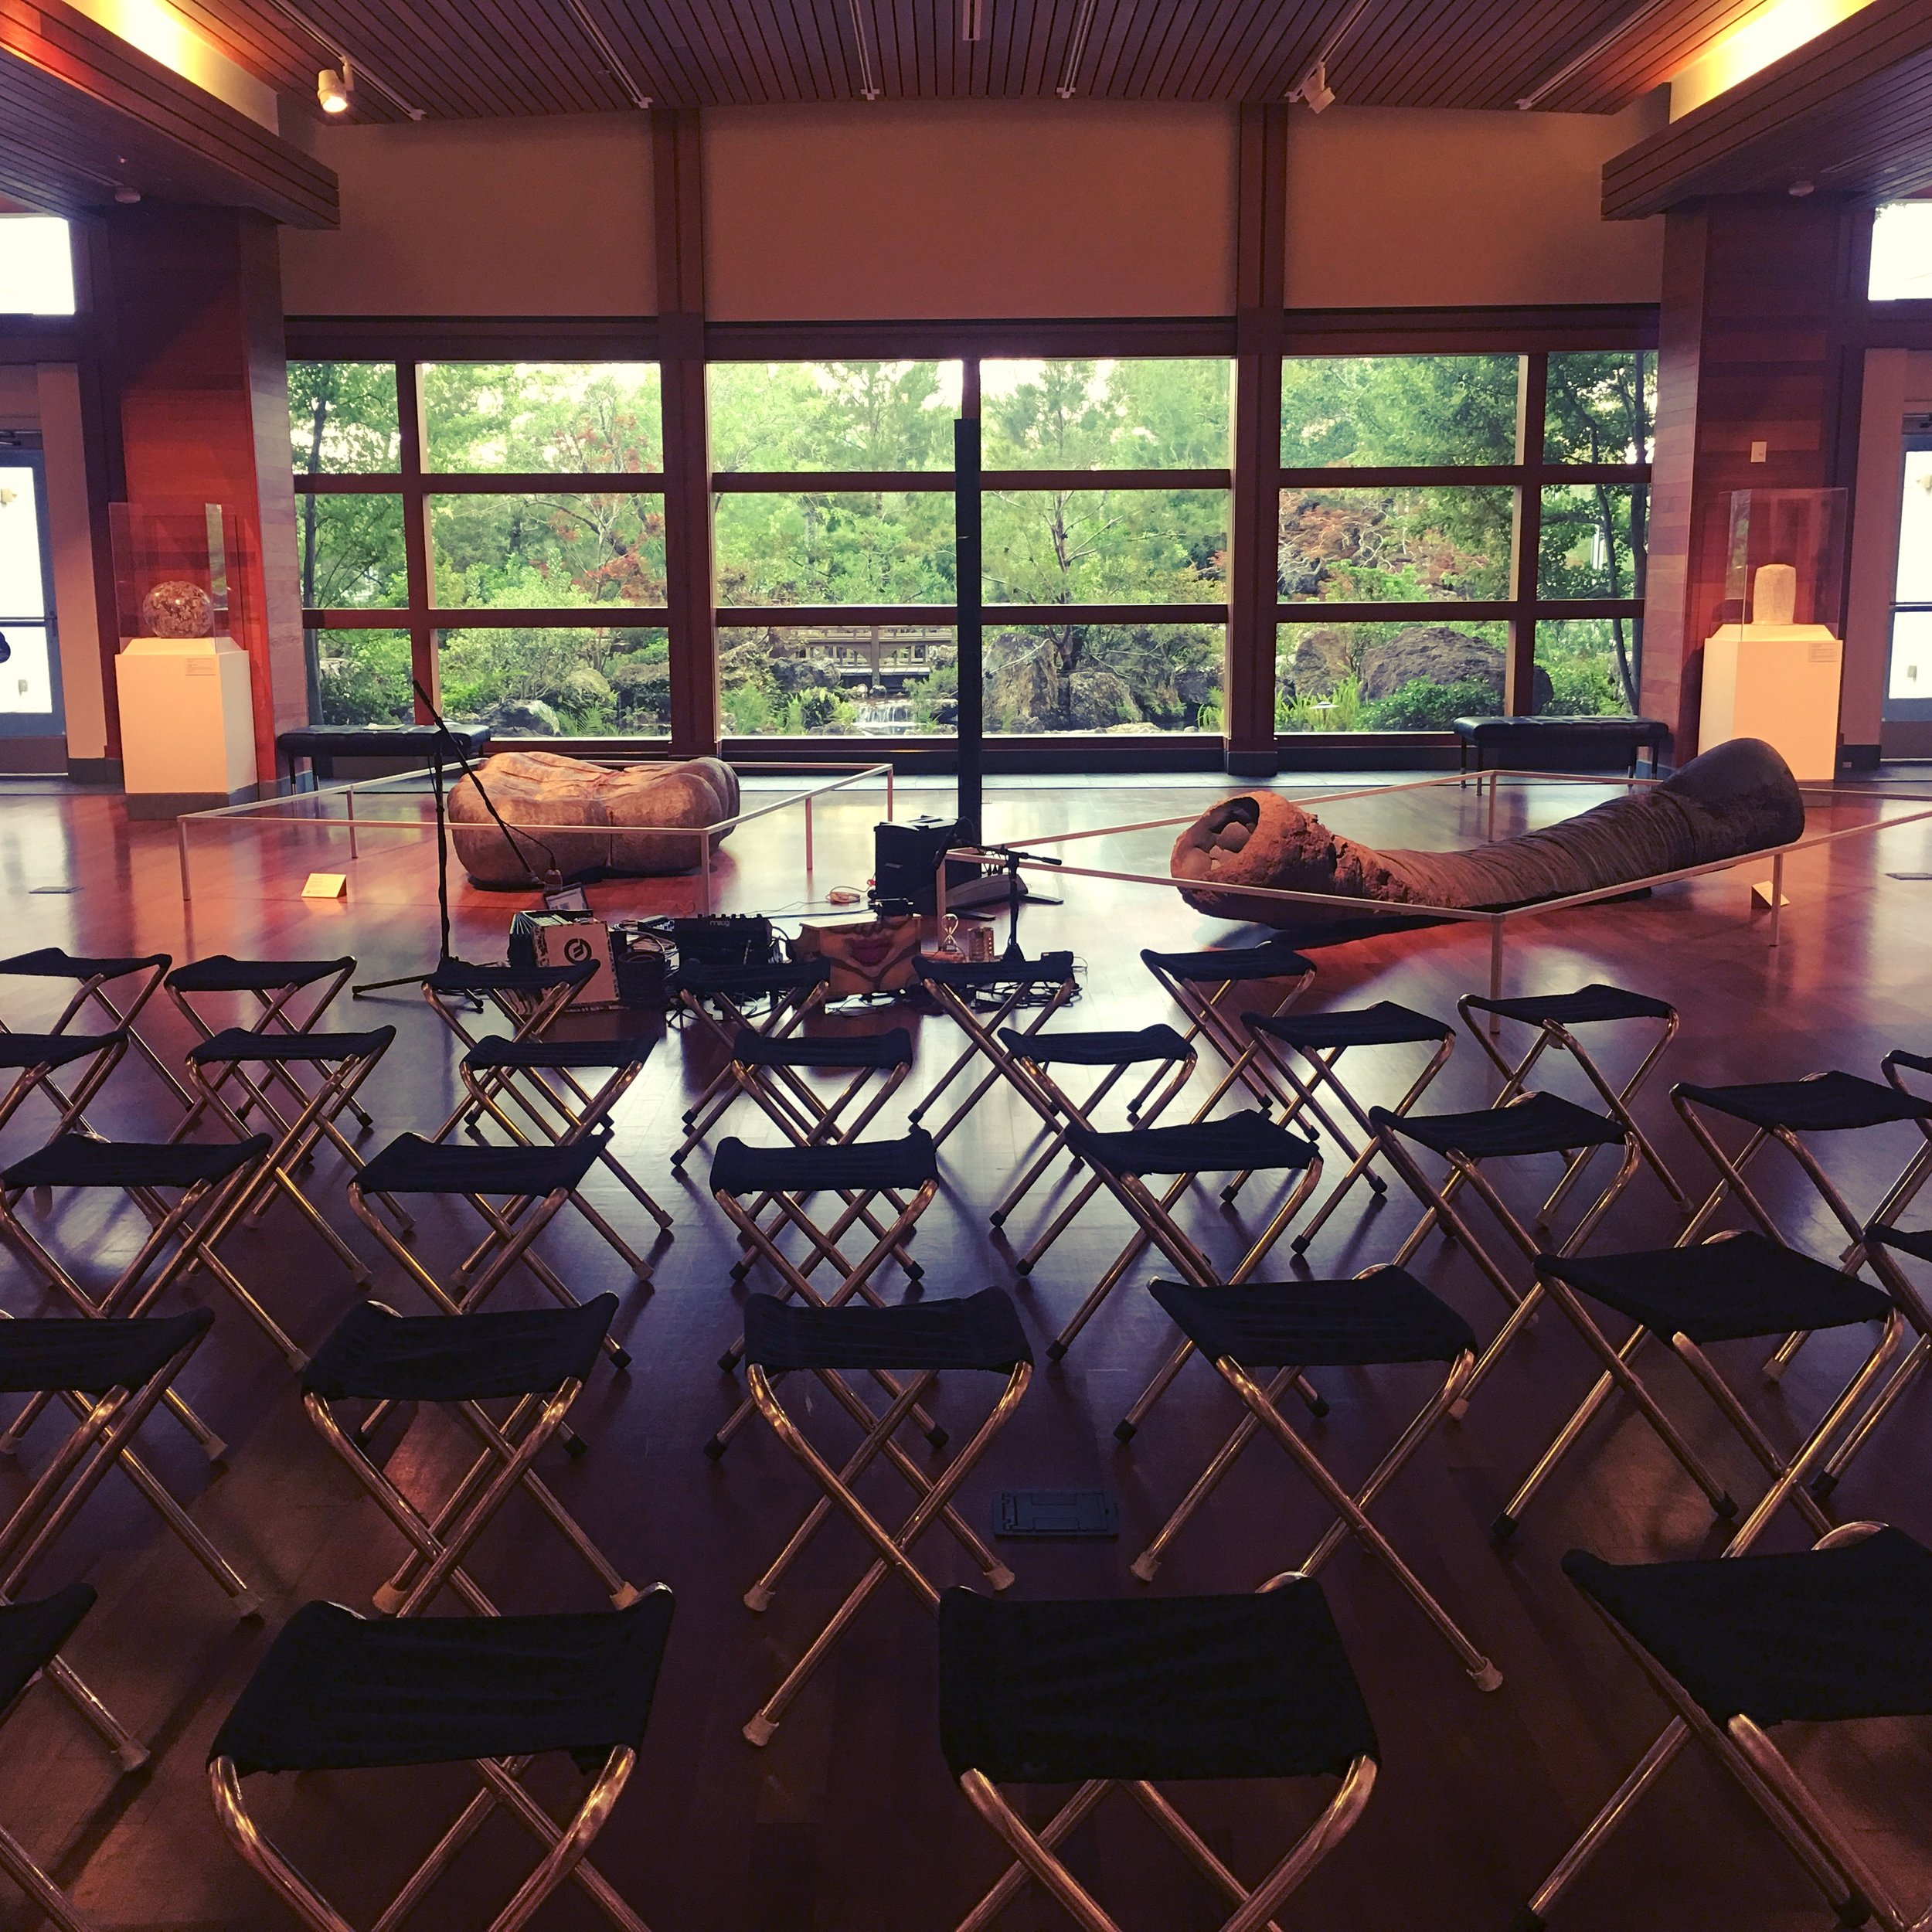 Performance setup at The Harn Museum of Art on May 11, 2017.